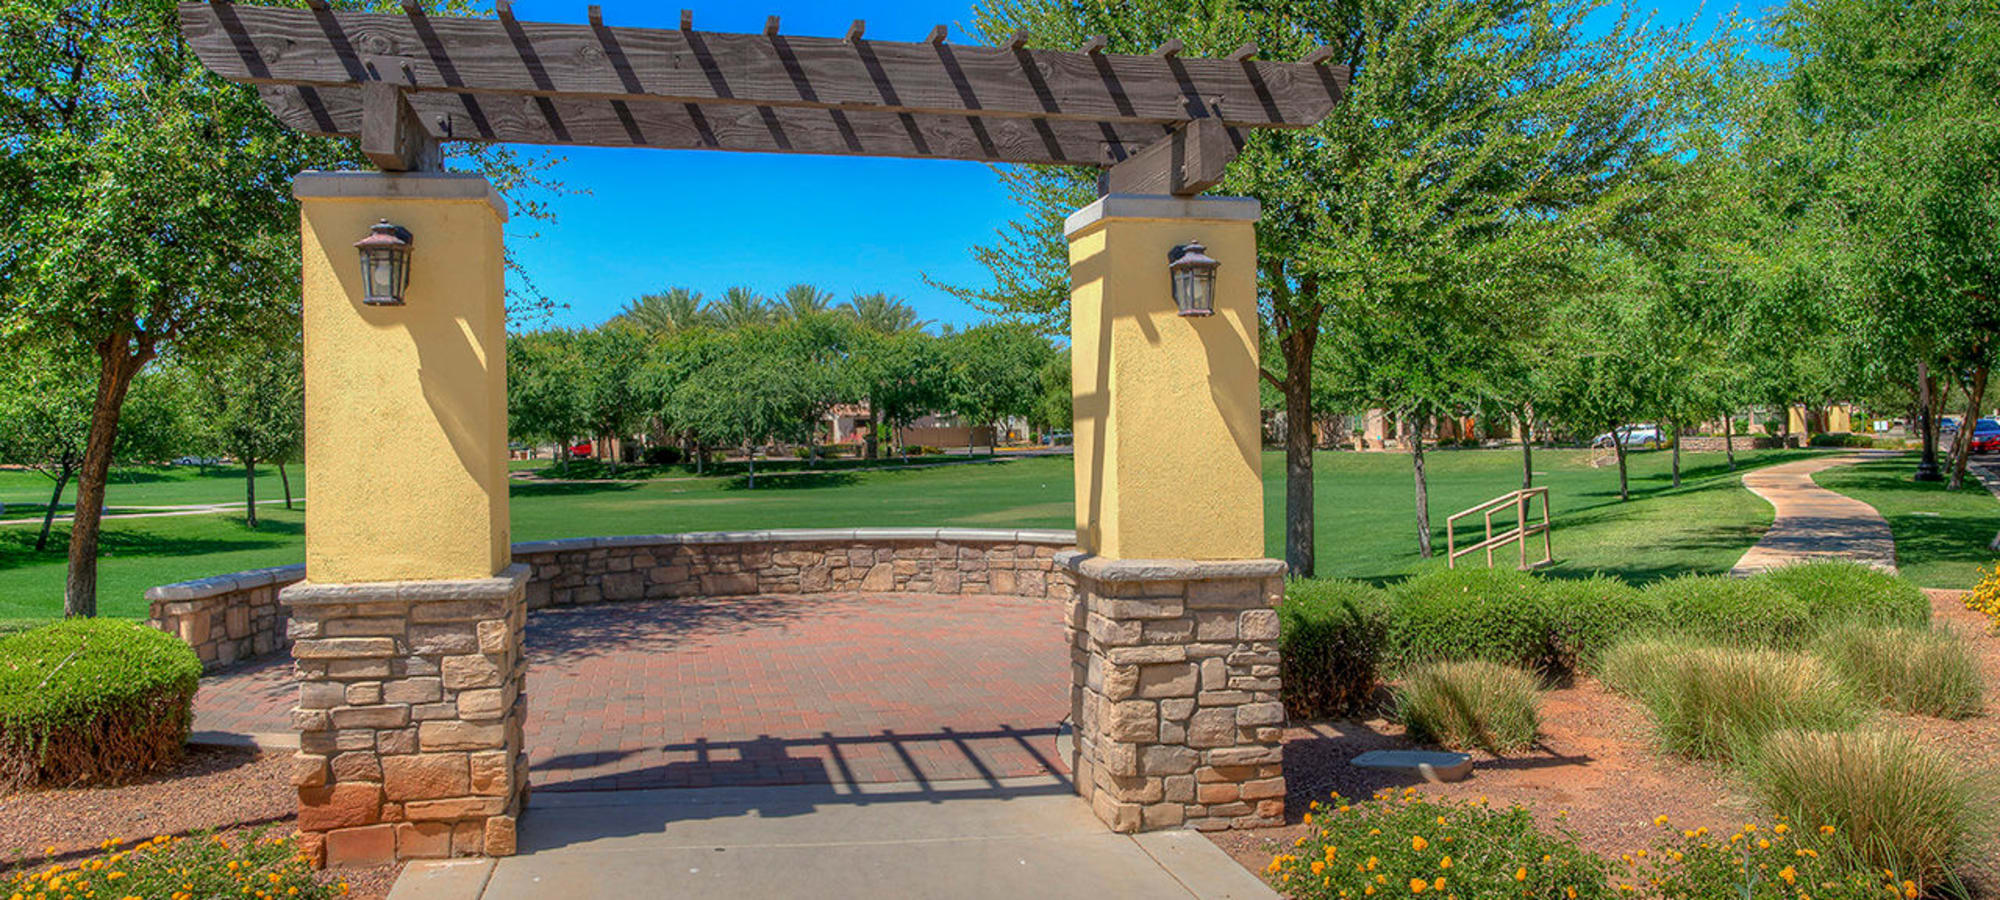 Archway into open fields at BB Living at Higley Park in Gilbert, Arizona